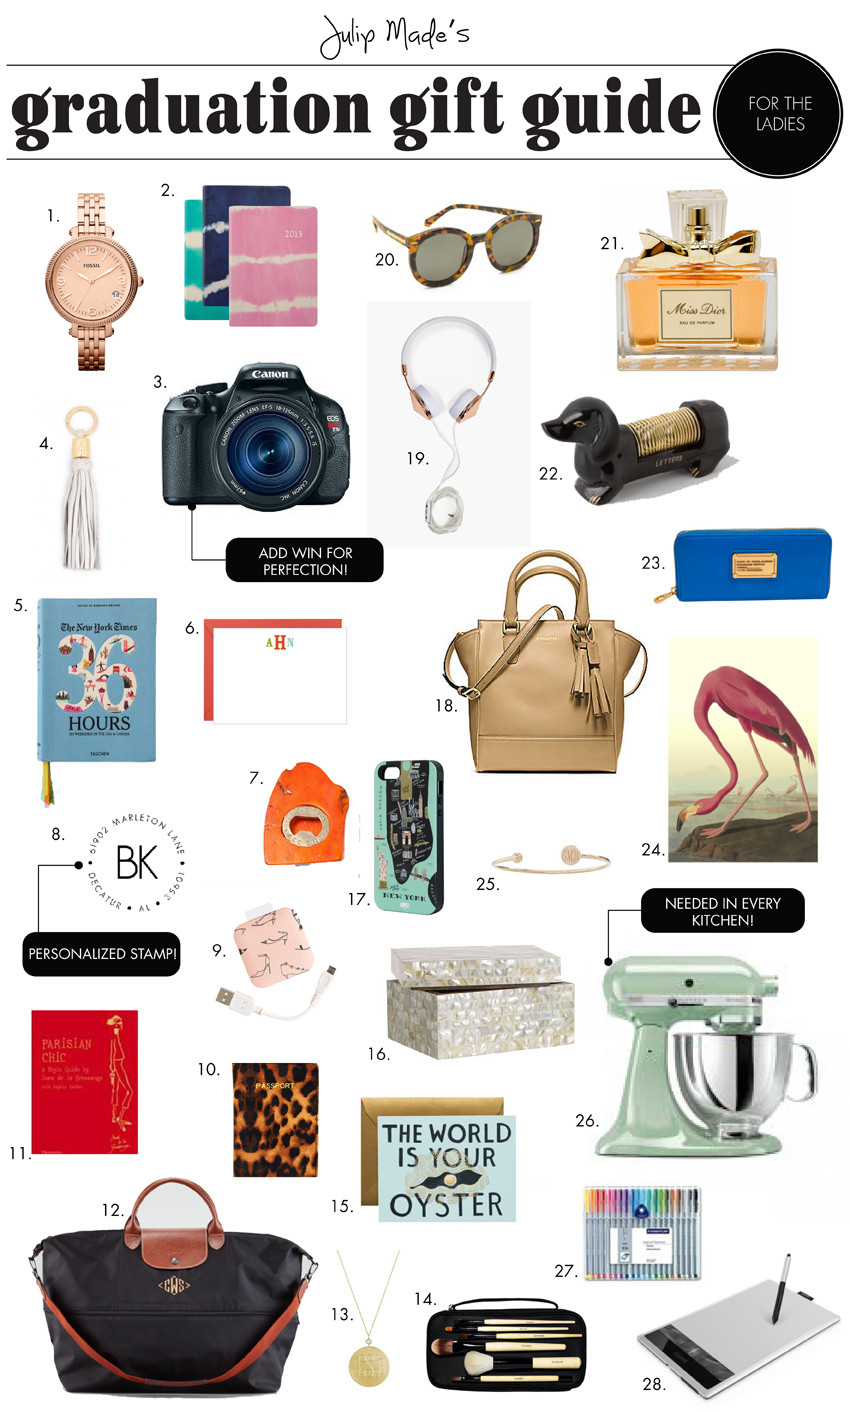 Best ideas about Girl Graduation Gift Ideas . Save or Pin Julip Made GRADUATION GIFT GUIDE FOR THE LADIES Now.